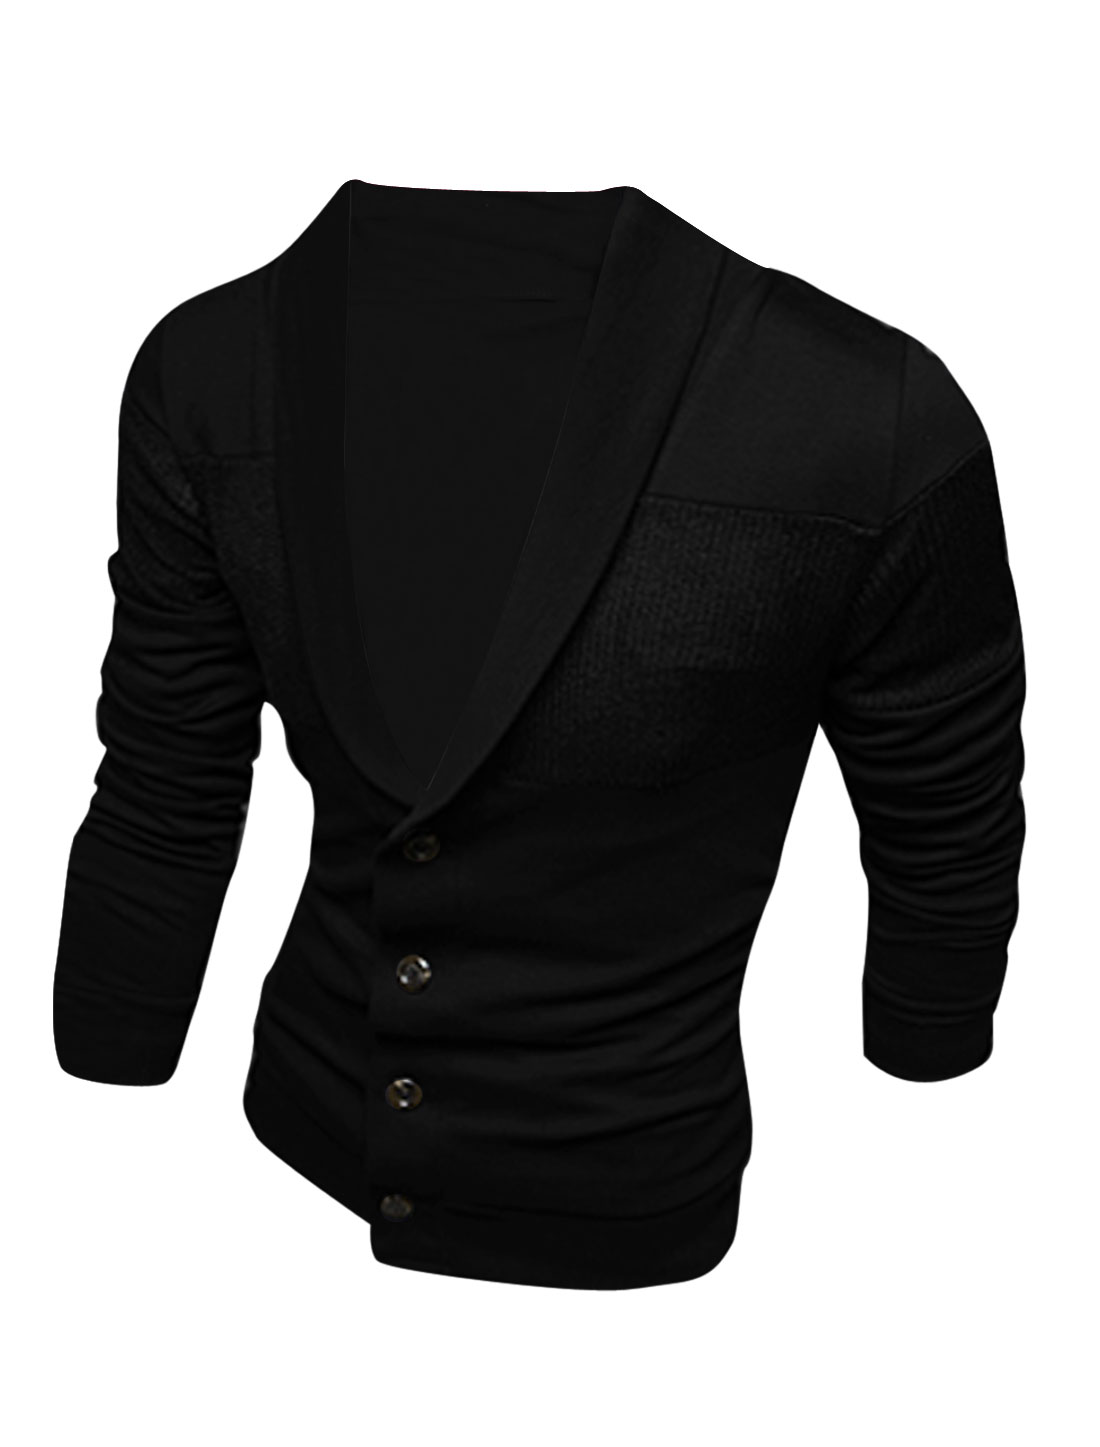 Men Shawl Collar Single Four Buttons Knitted Panel Cardigan Black M